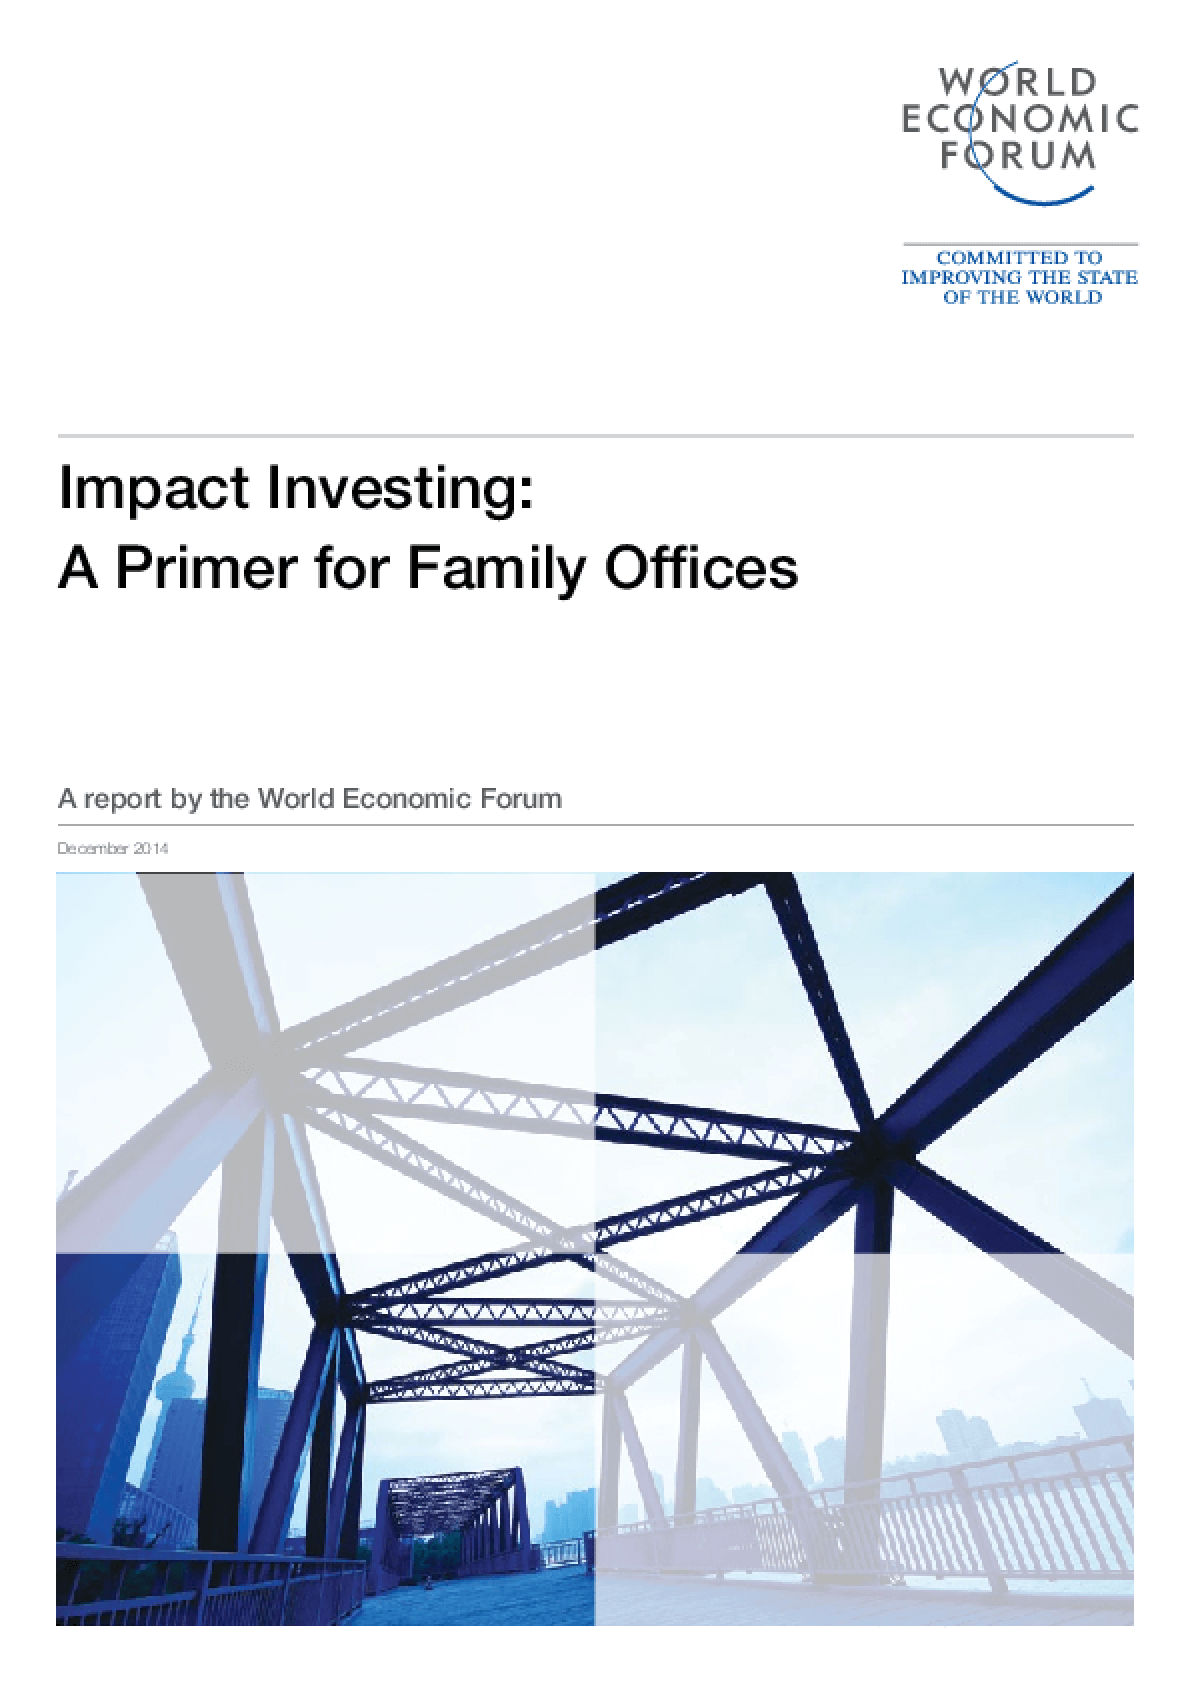 Impact Investing: a primer for family offices